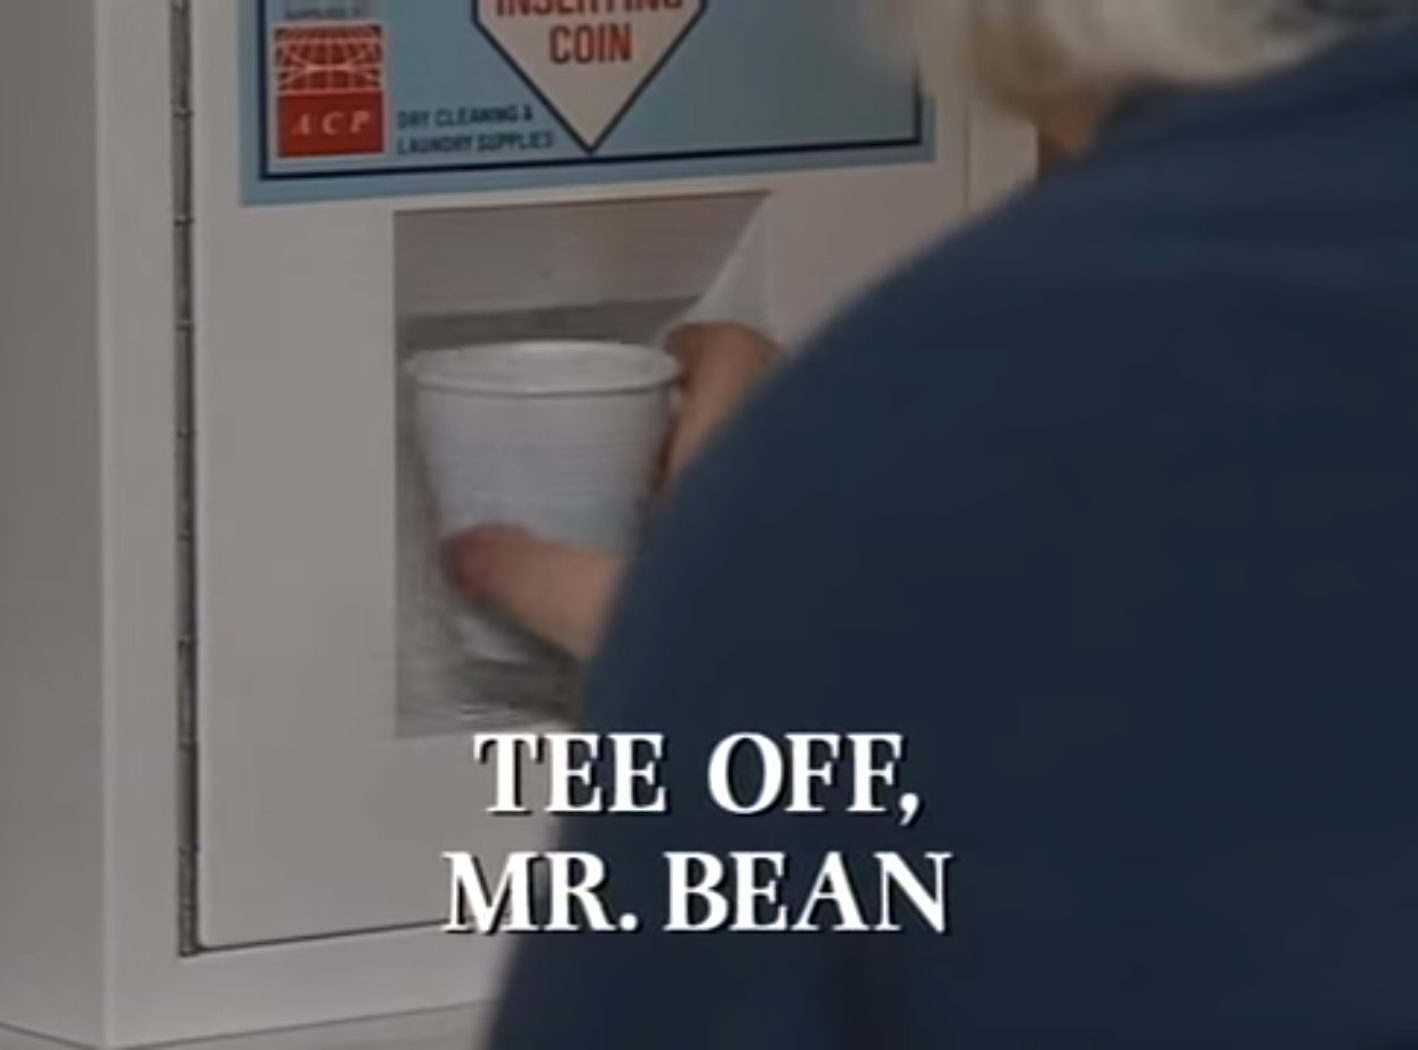 Tee off mr bean mr bean wiki fandom powered by wikia tee off mr bean solutioingenieria Image collections